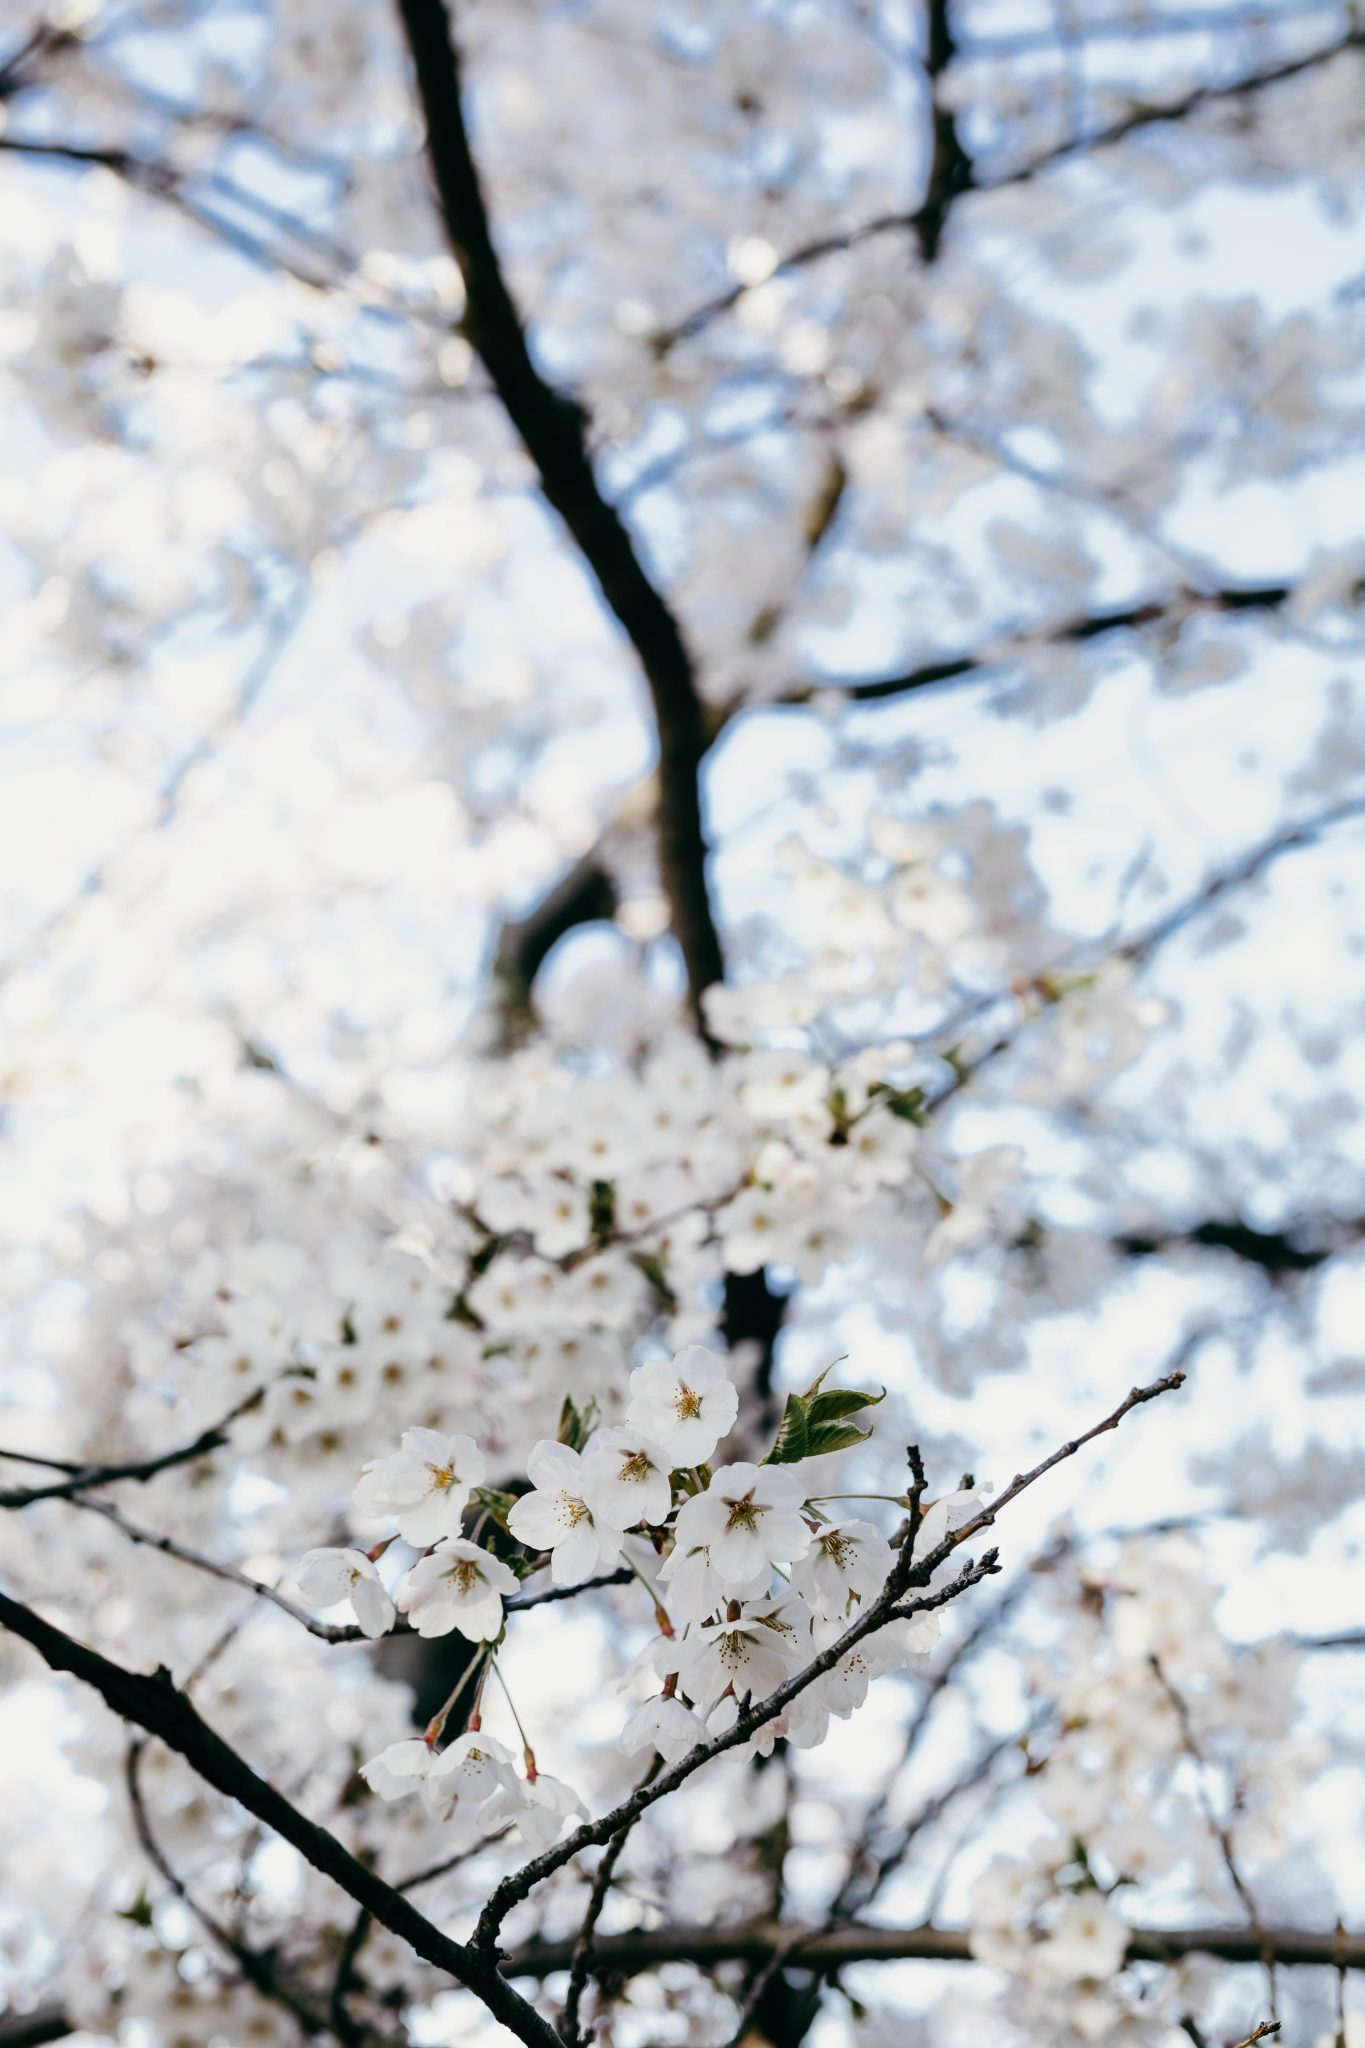 cherry blossoms trees (8 of 9)